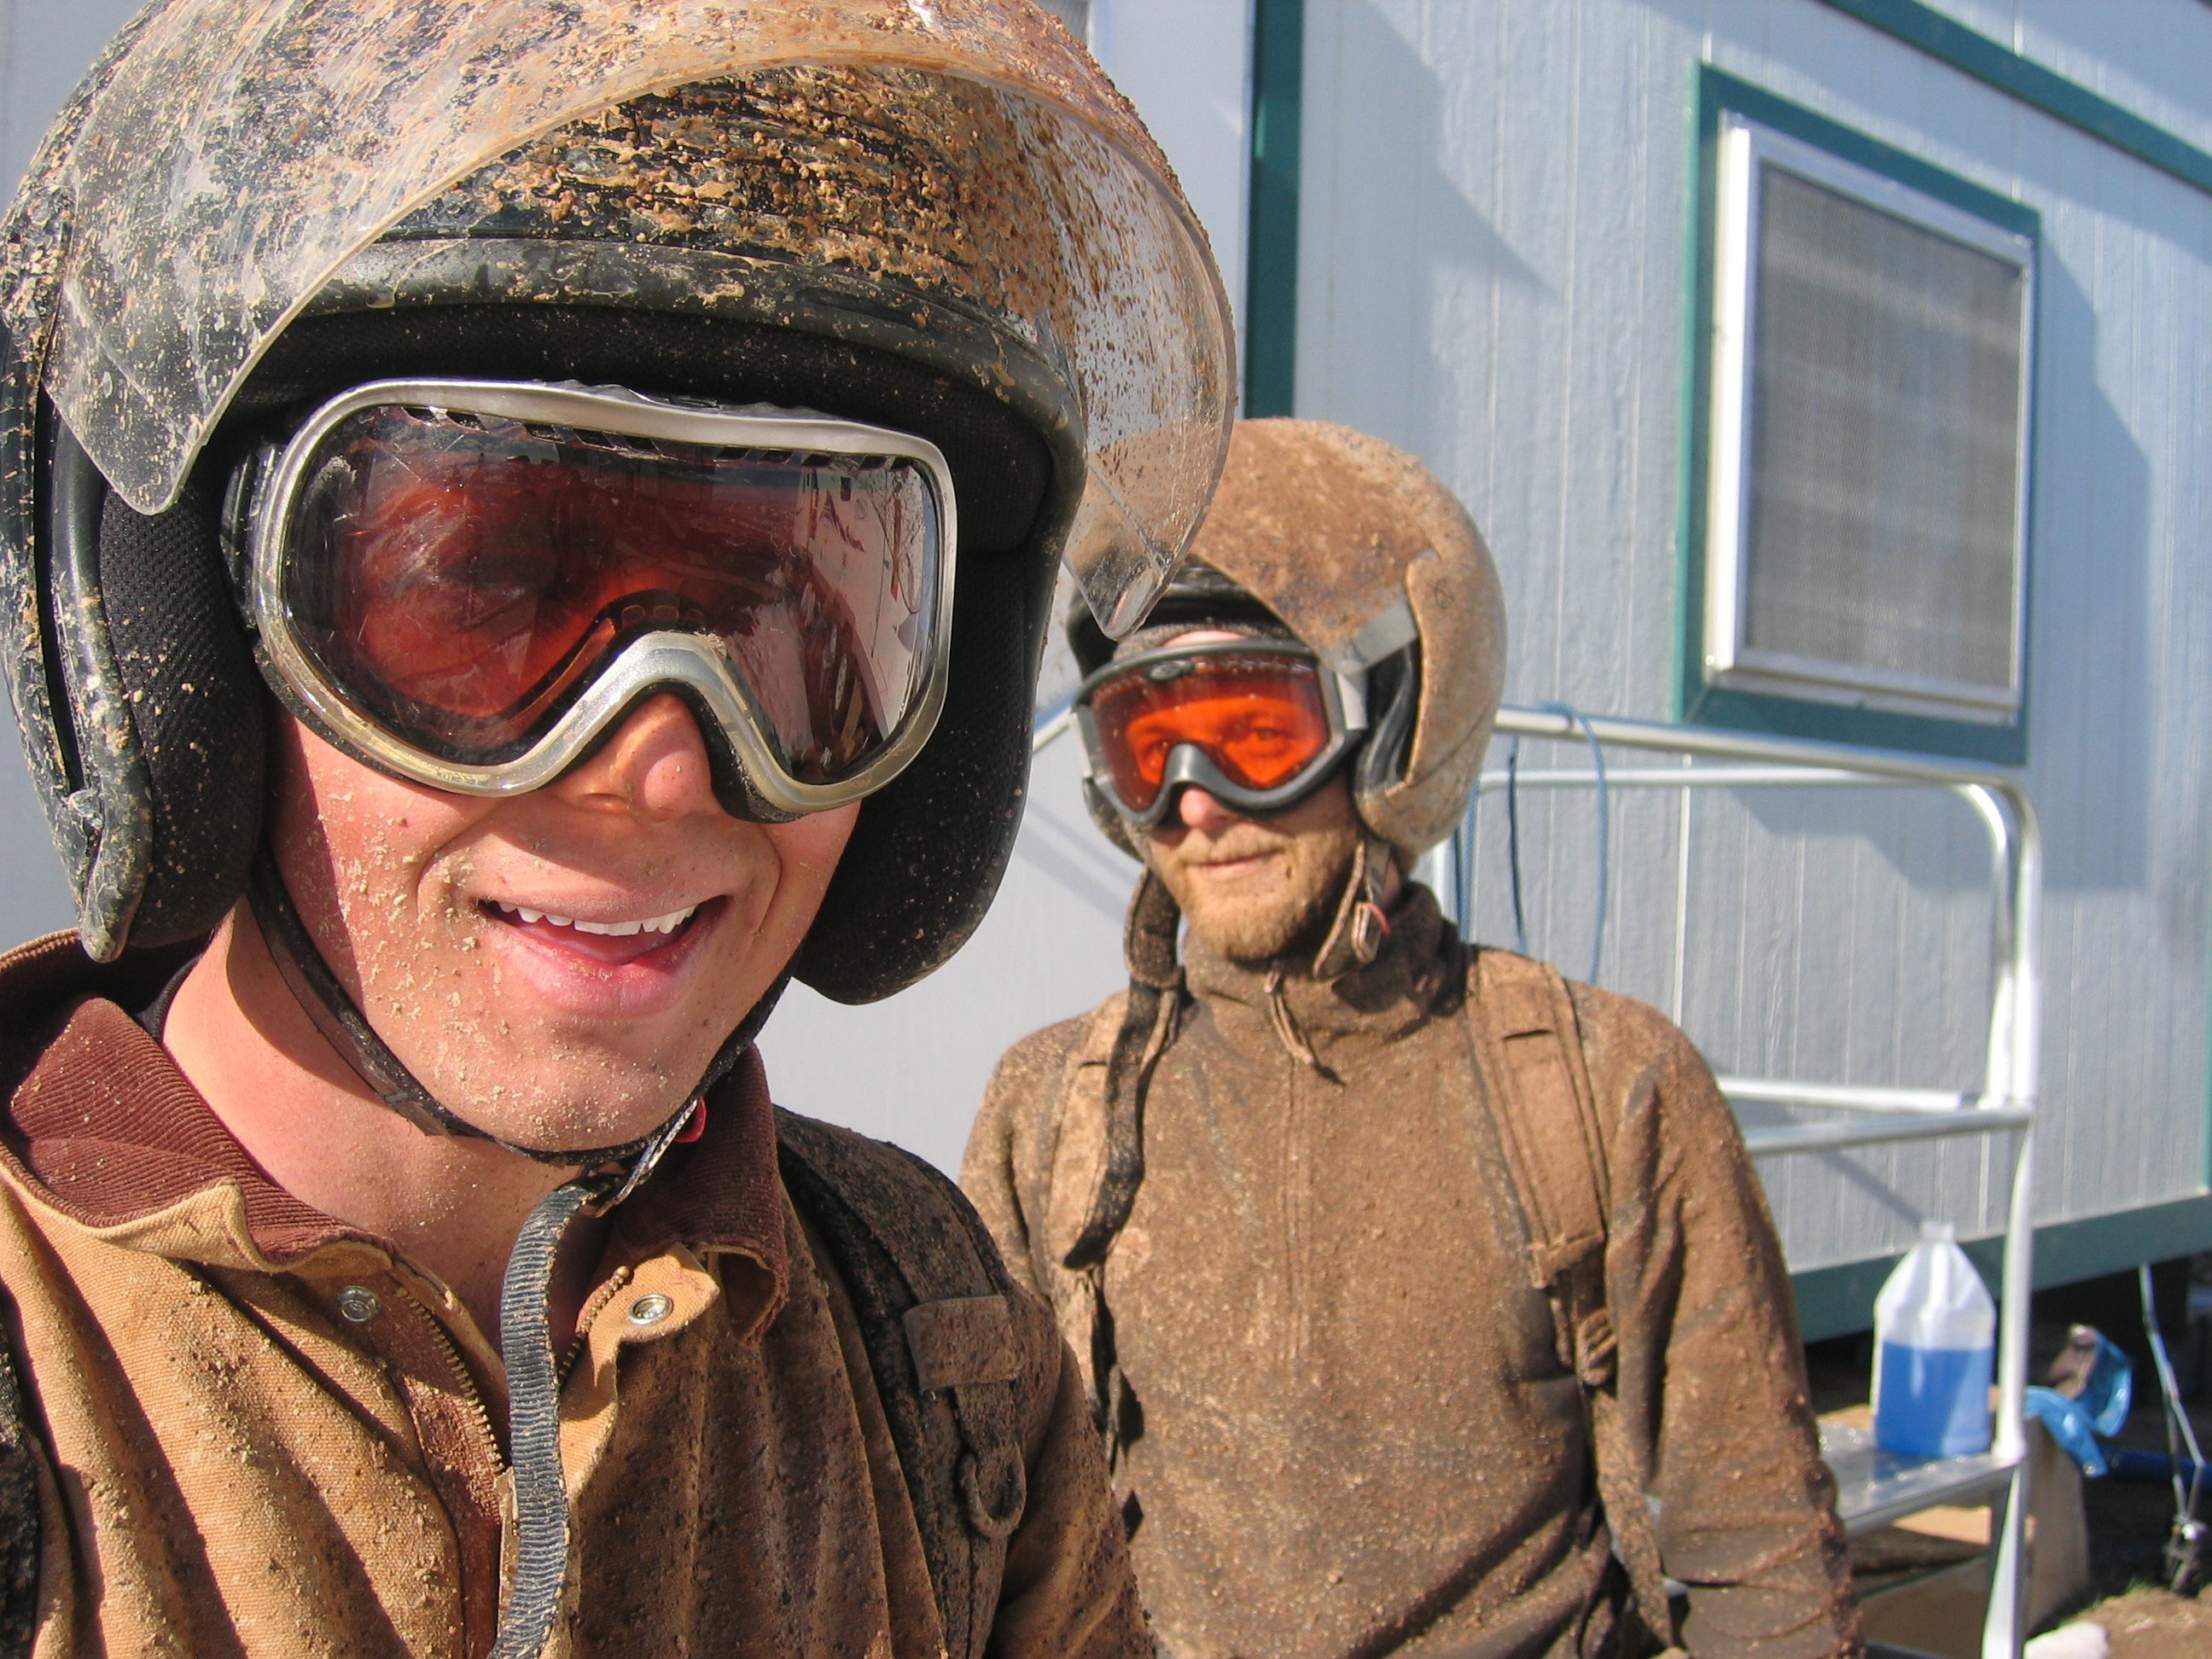 After the snow, muddy days for the noise crew (2007)